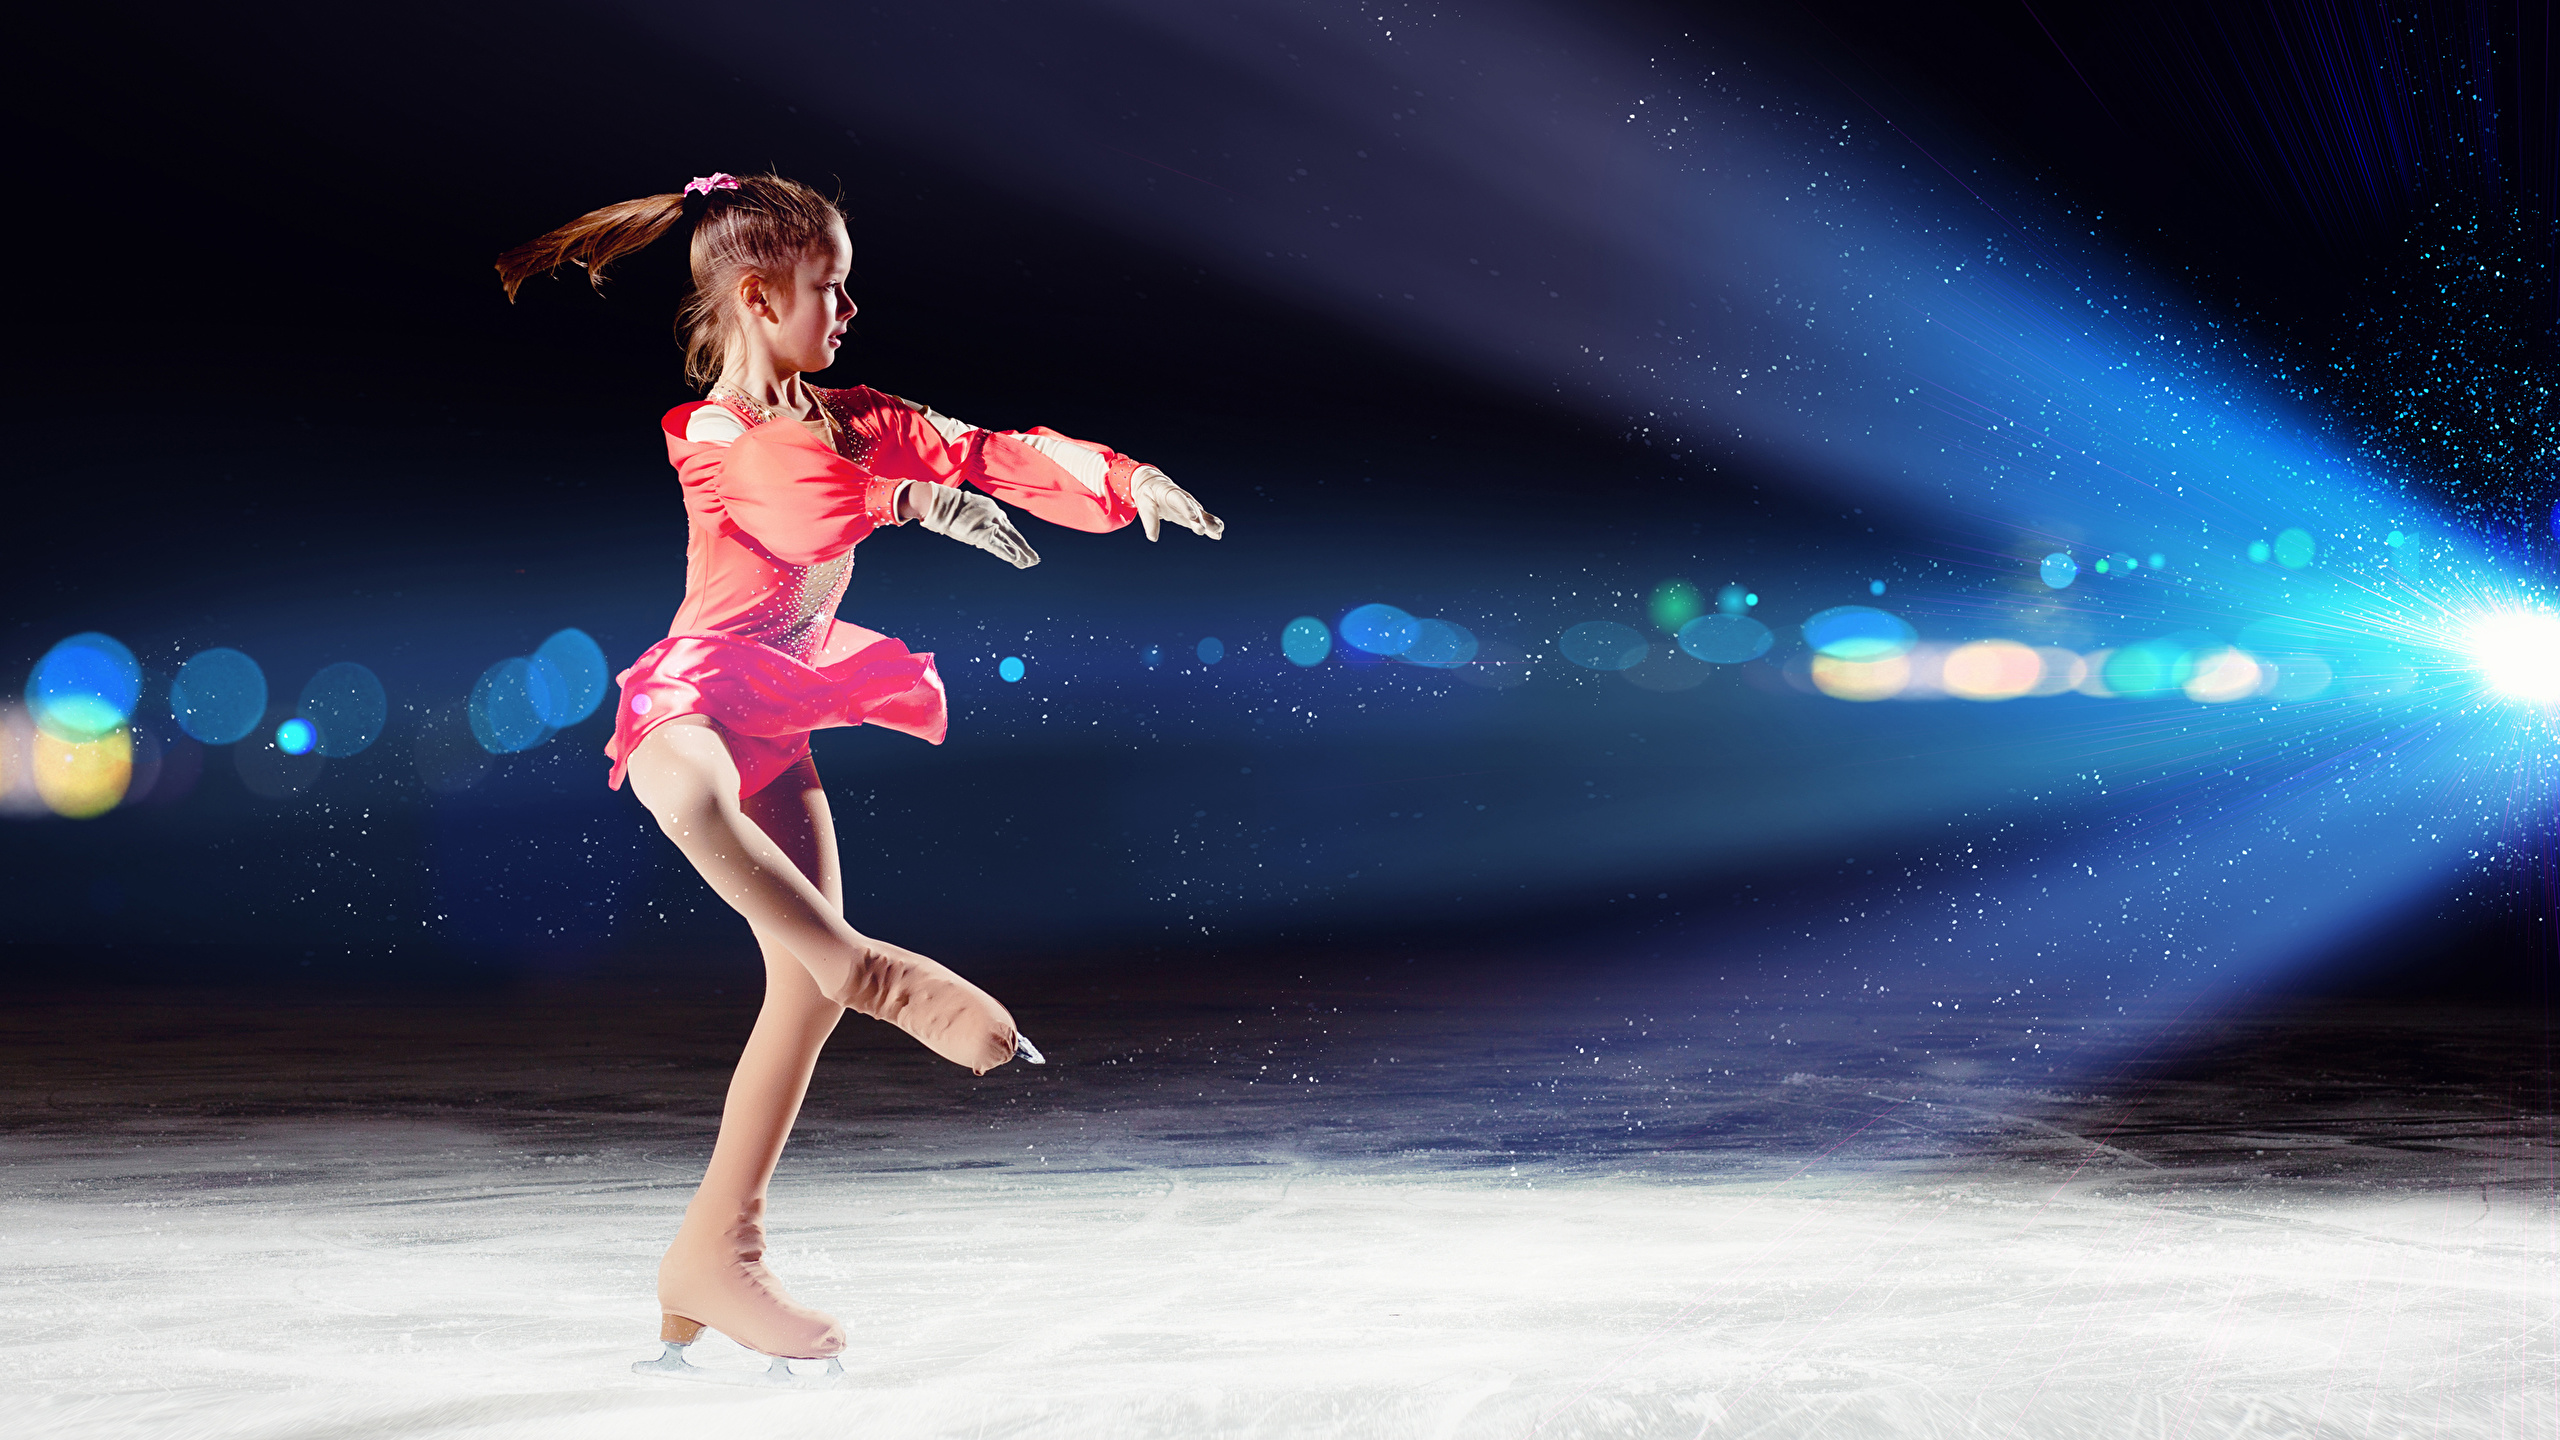 Photo Little girls Ice skate Dance Ice Children 2560x1440